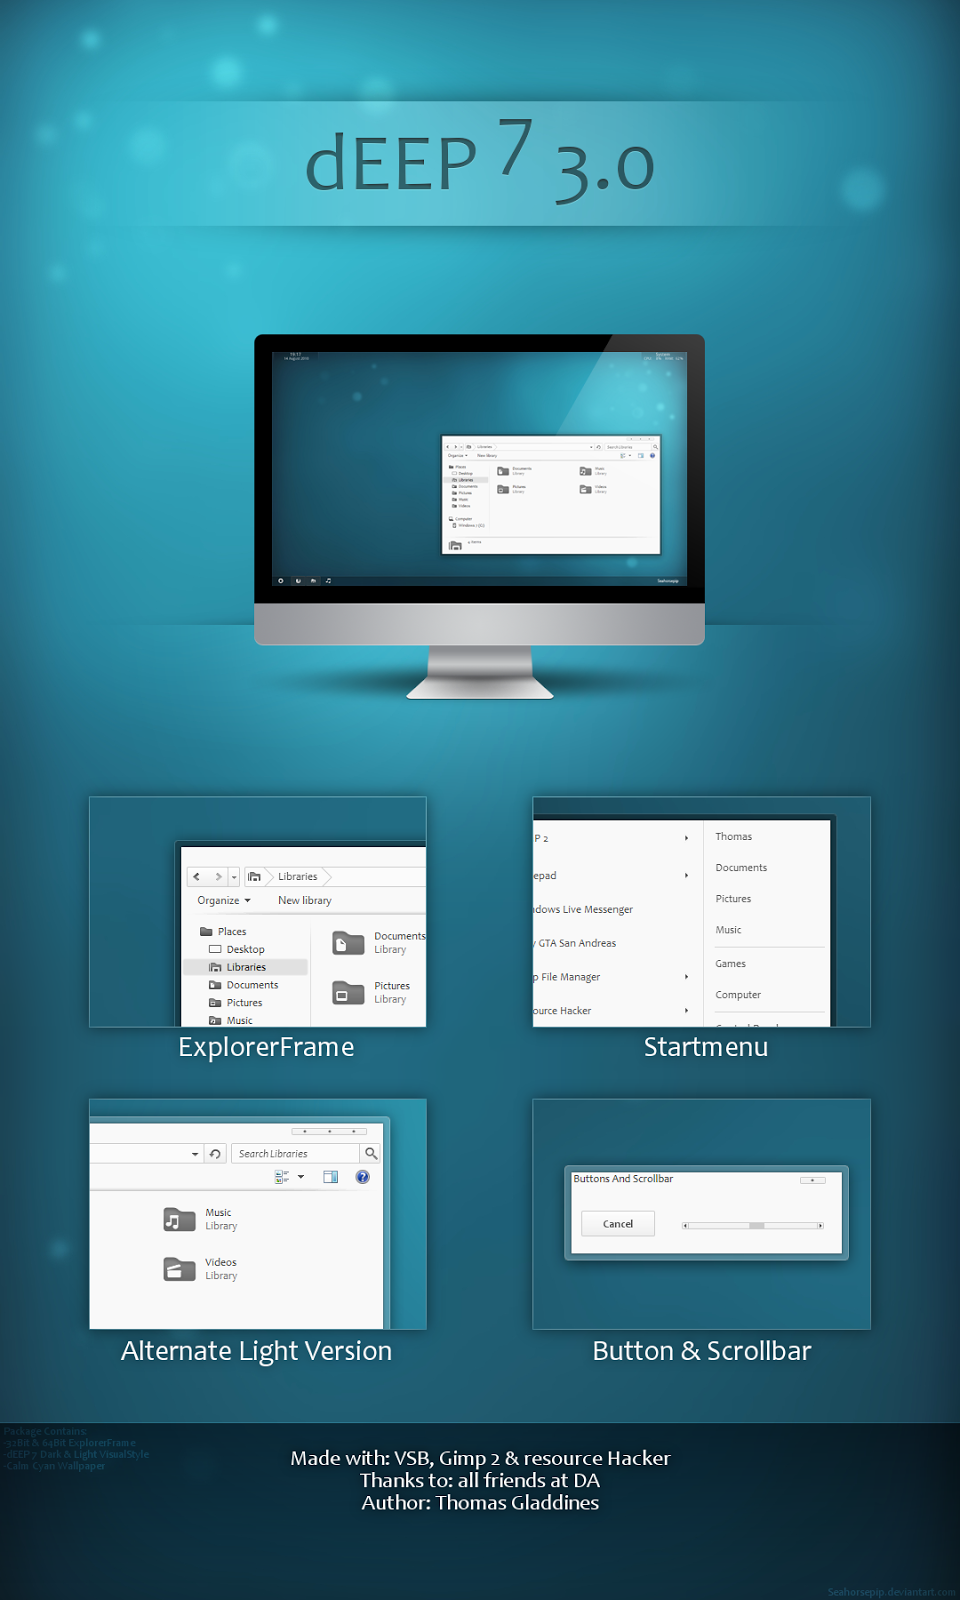 dEEP 7 3.0 Theme For Windows 7 cleodesktop Download http